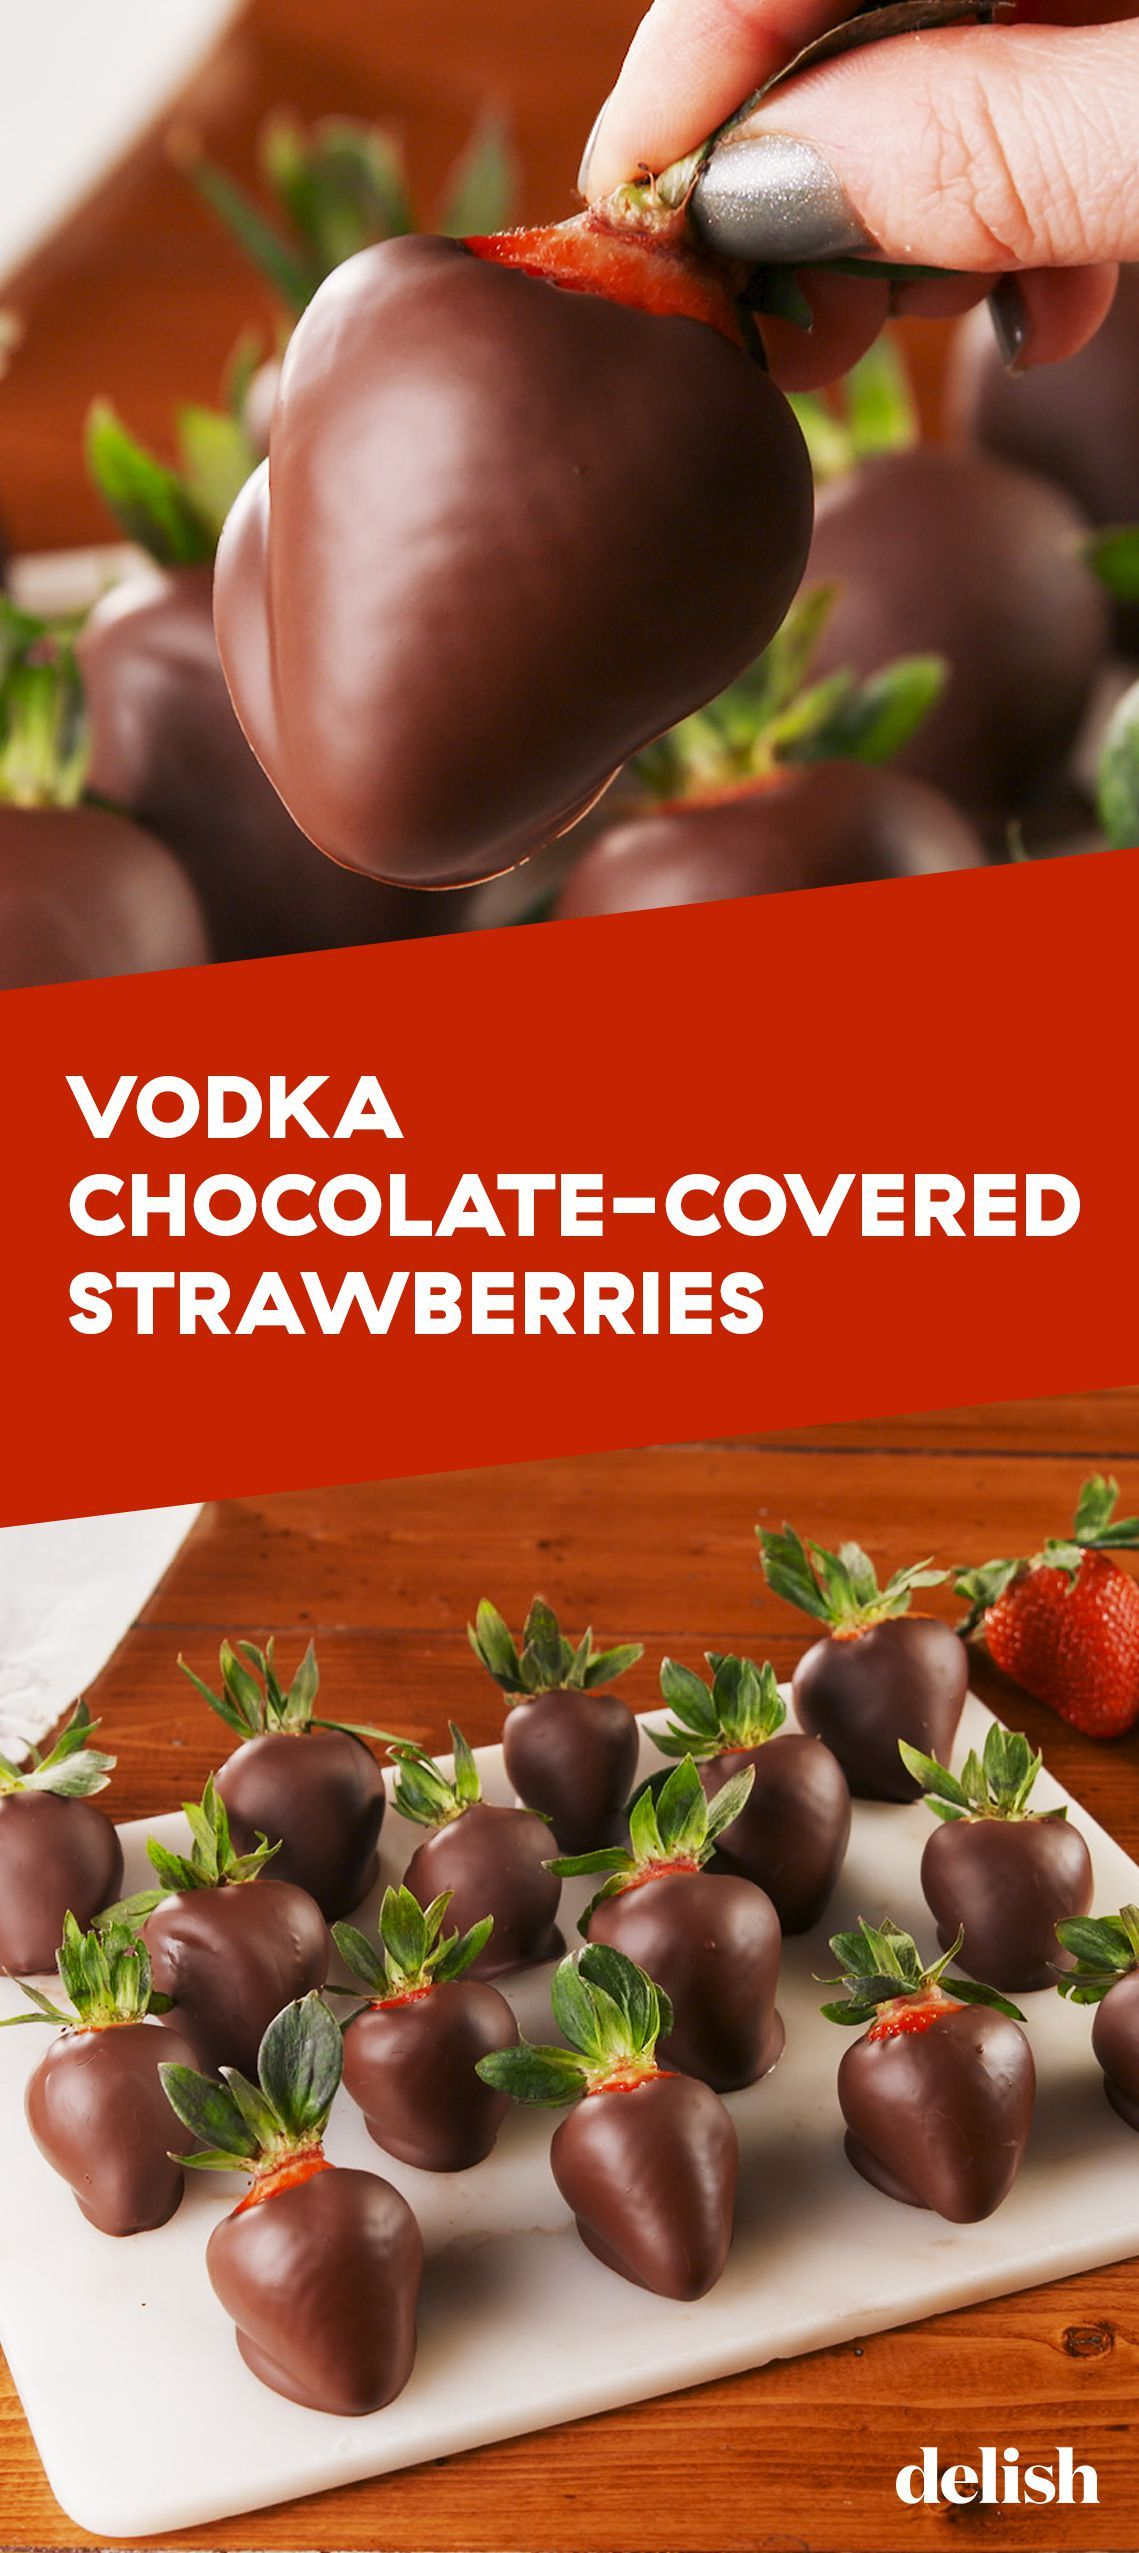 Wanna Have The Best Valentines Day Ever? Make These Vodka Chocolate-Covered Strawberries